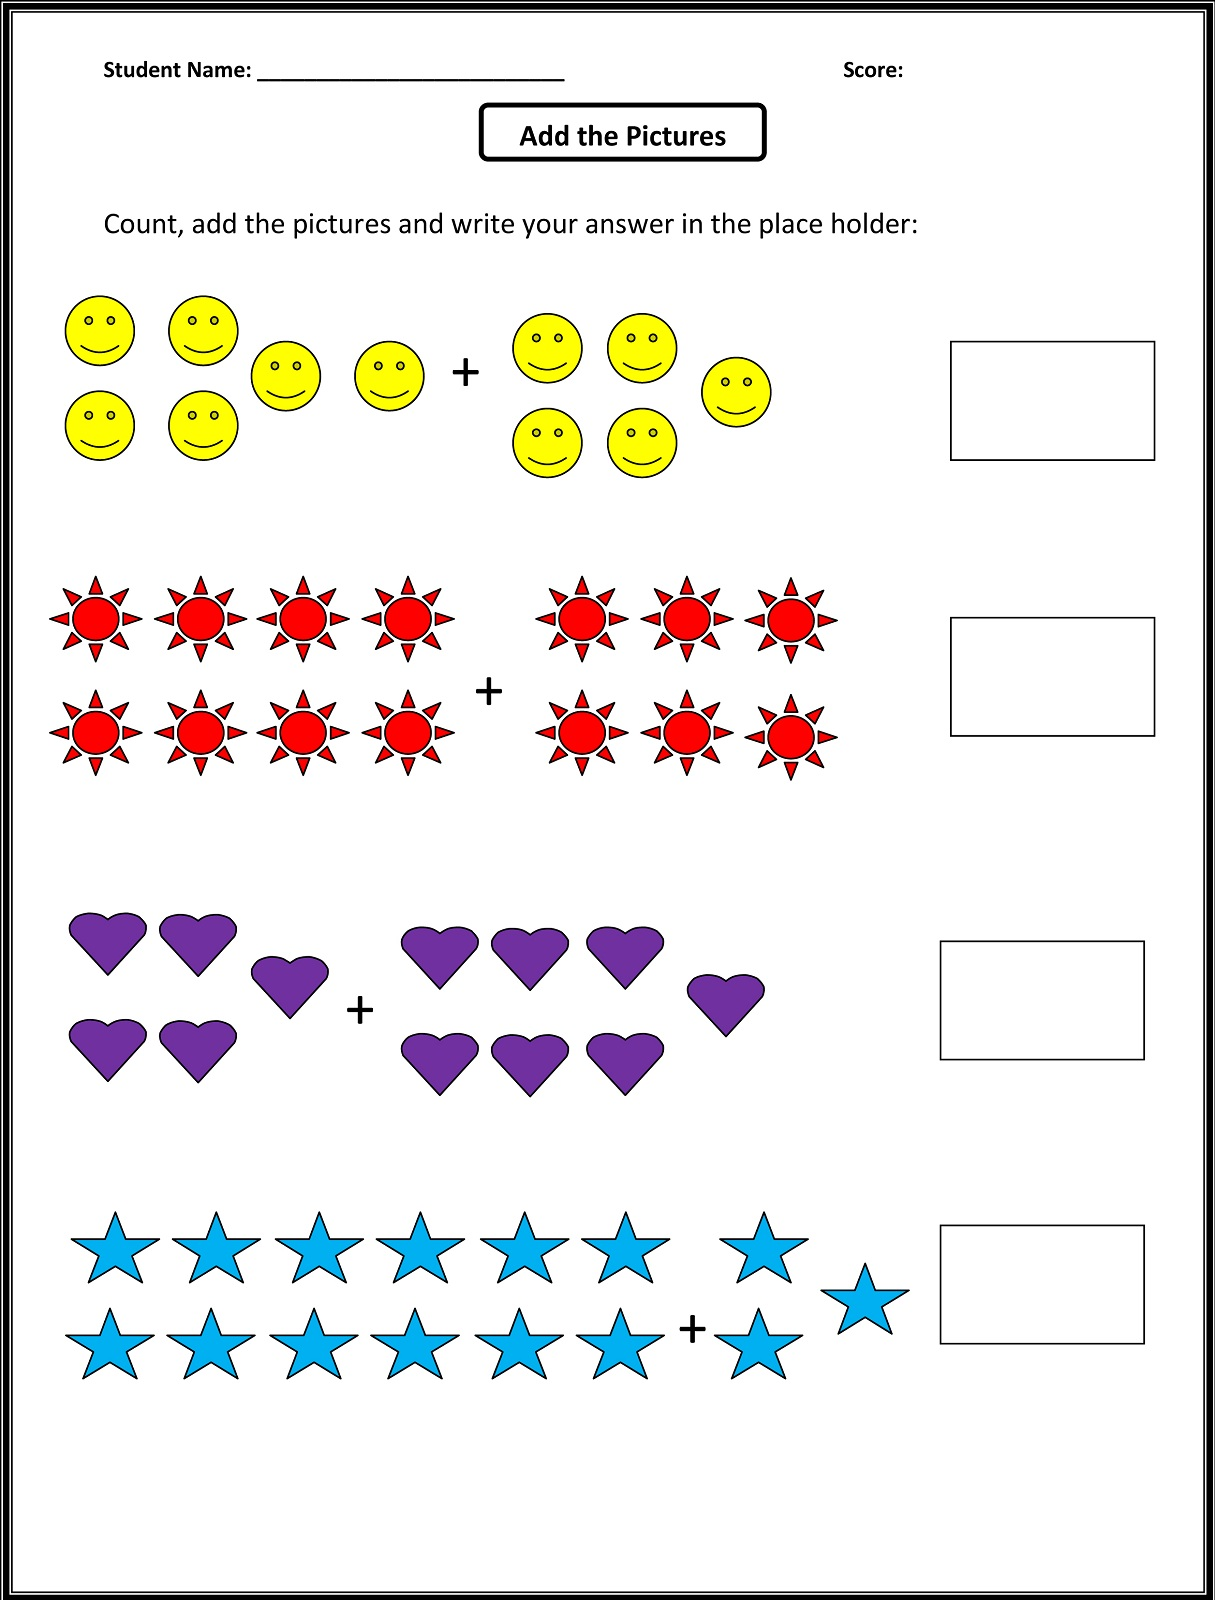 math worksheet : worksheets for 1st grade math  activity shelter : Math Worksheets 1st Grade